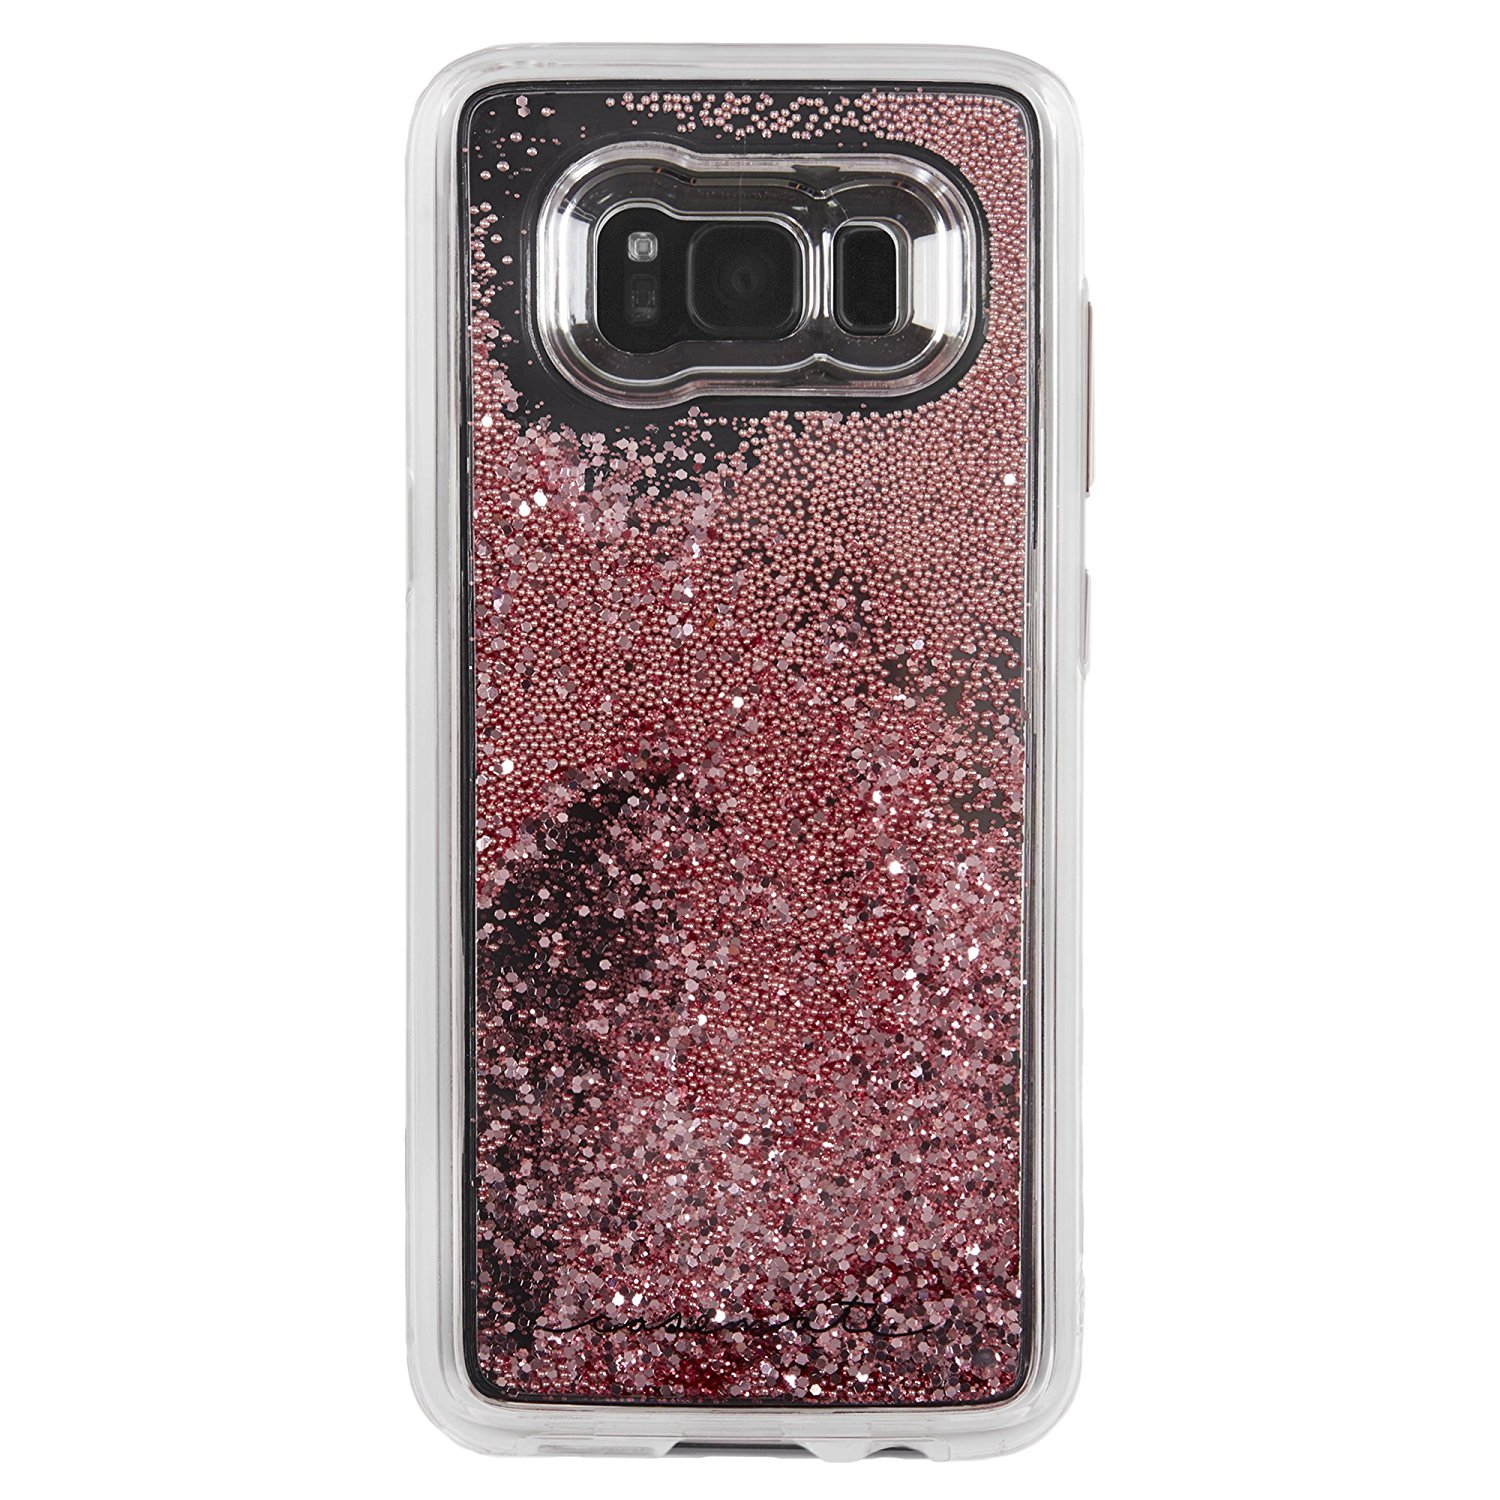 Brand New Retail Master Carton Case-Mate Samsung Galaxy S8 Case - WATERFALL - Rose Gold Local In Miami!